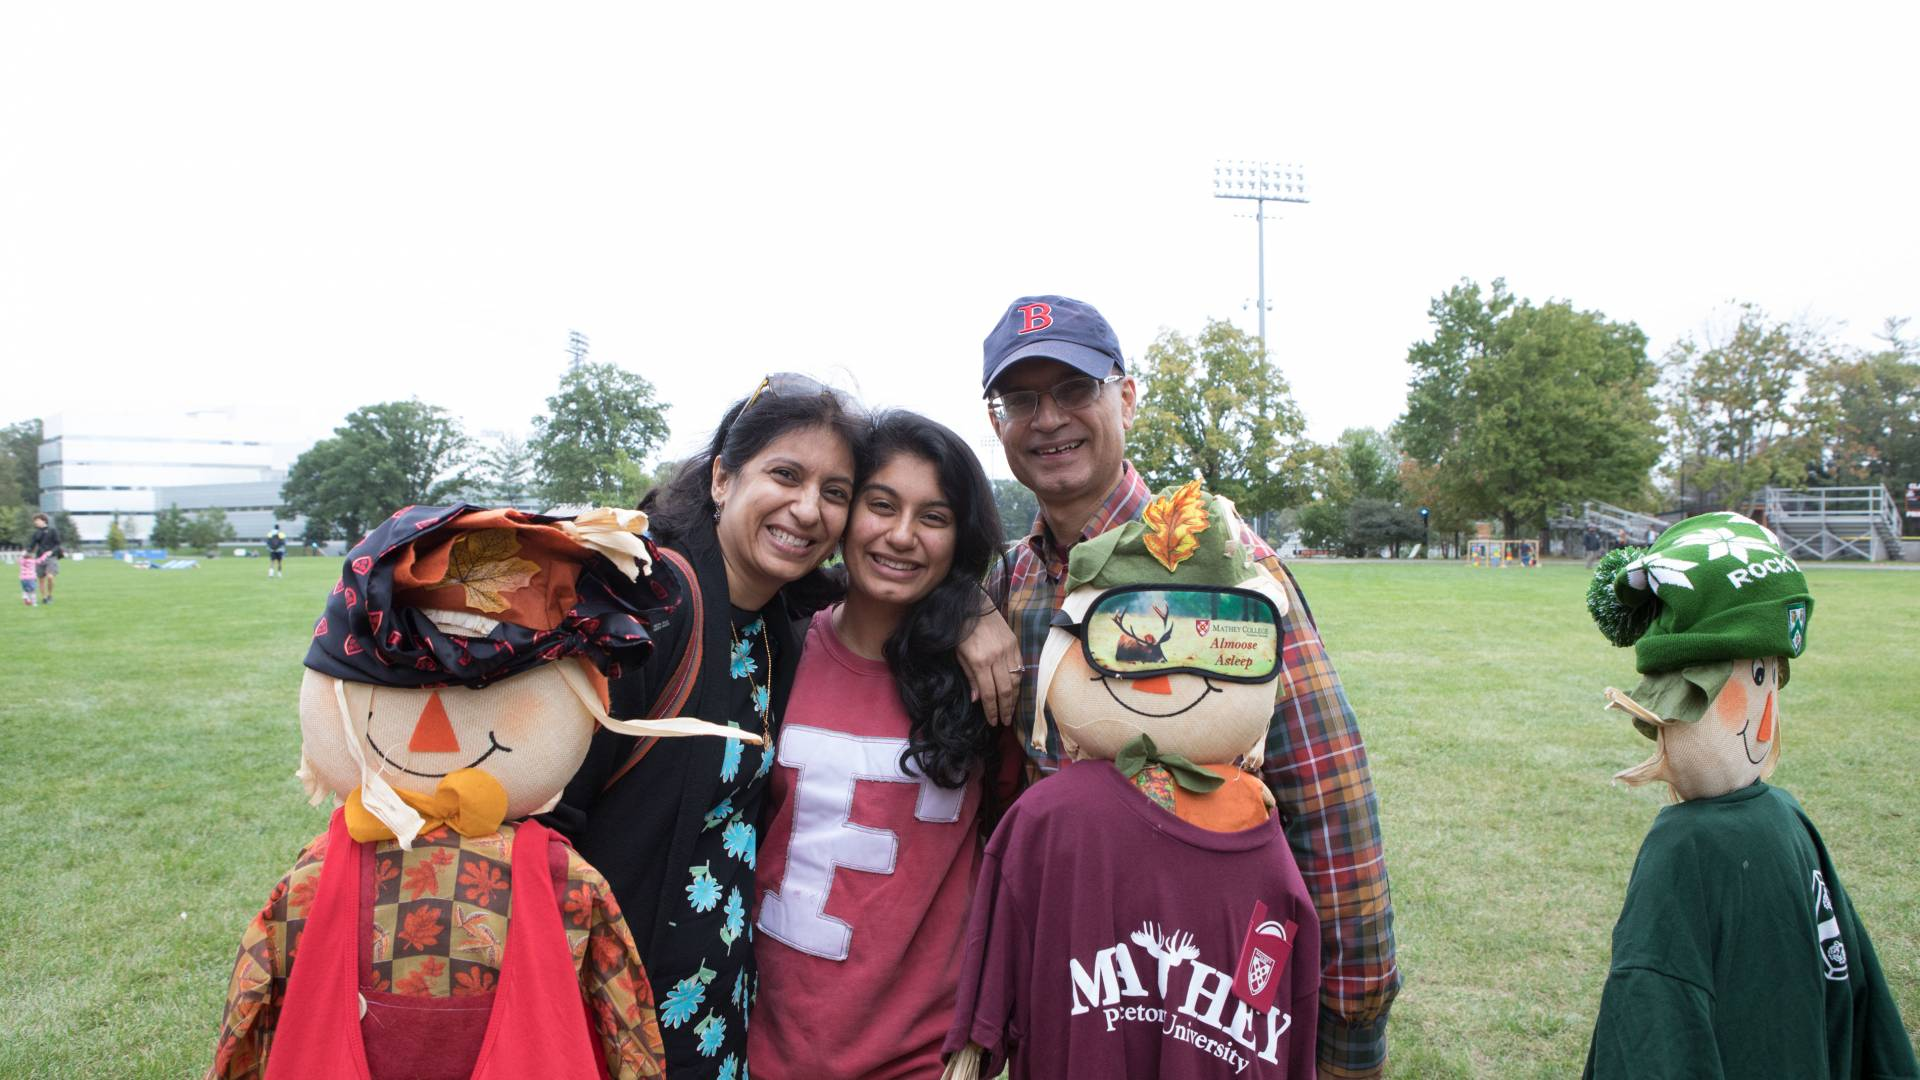 Vrinda Madan and her parents, Alka Madan and Atul Madan on Poe Field